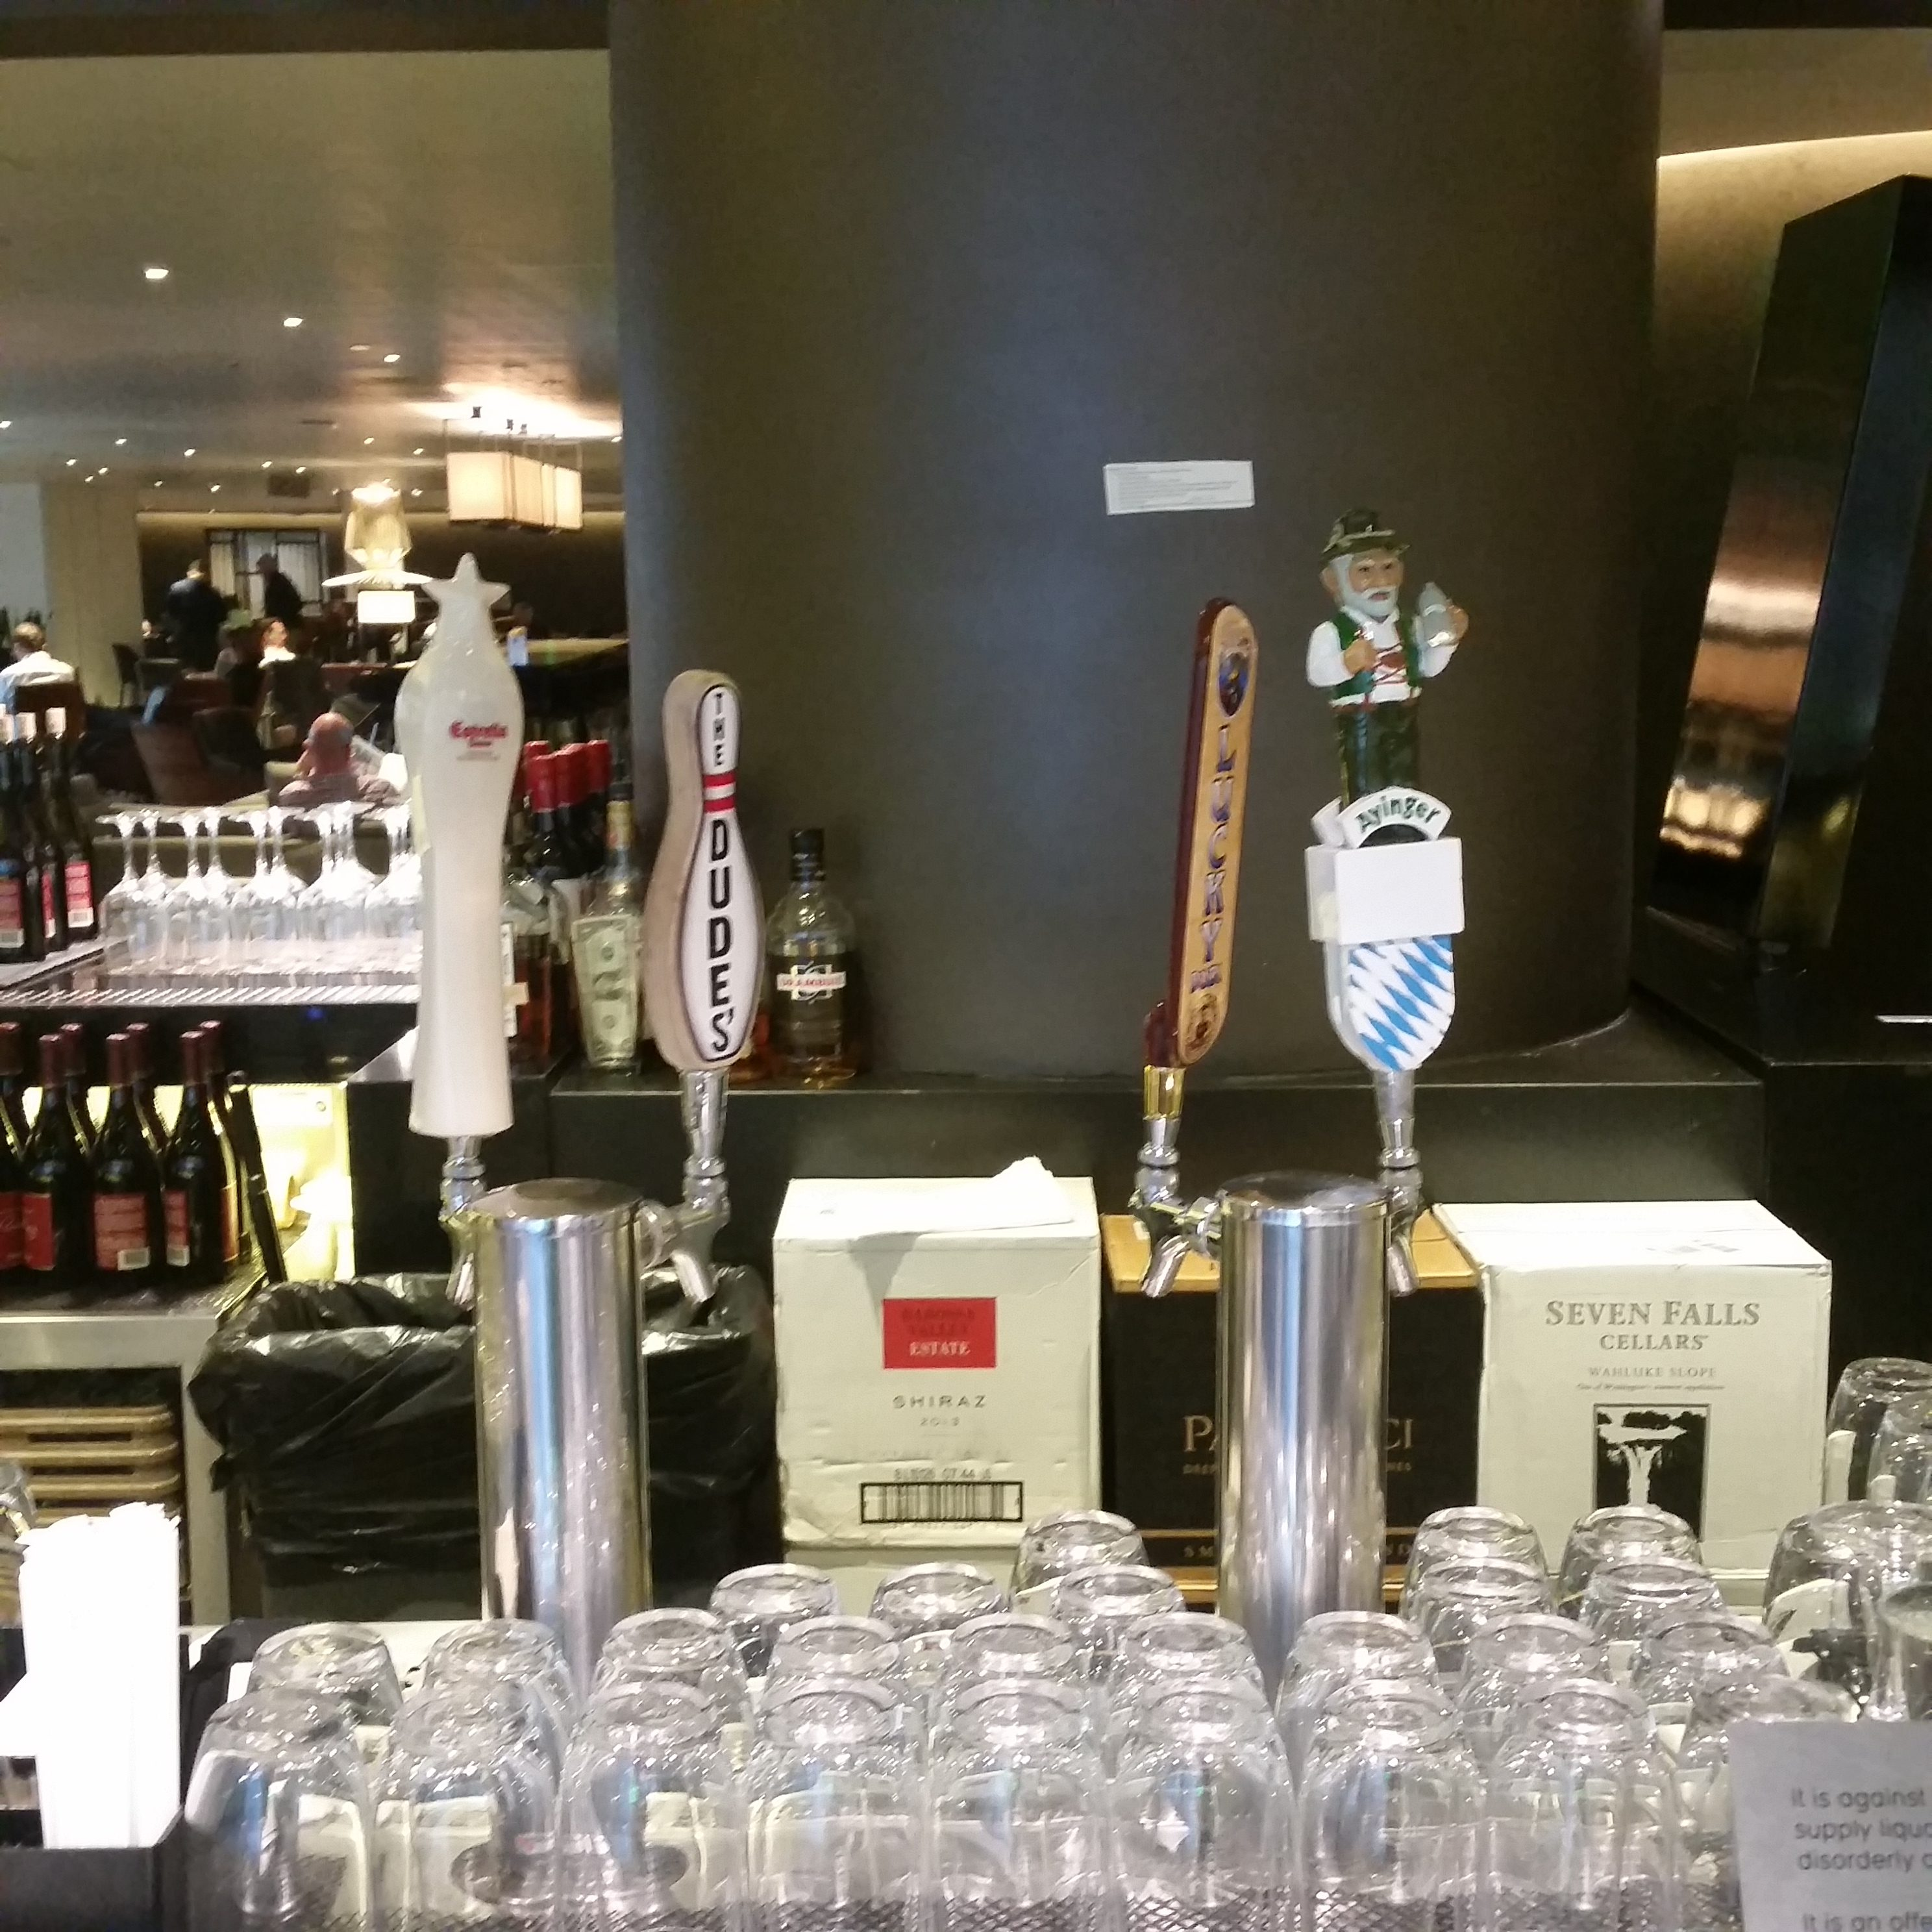 Qantas LAX lounge review beers on tap